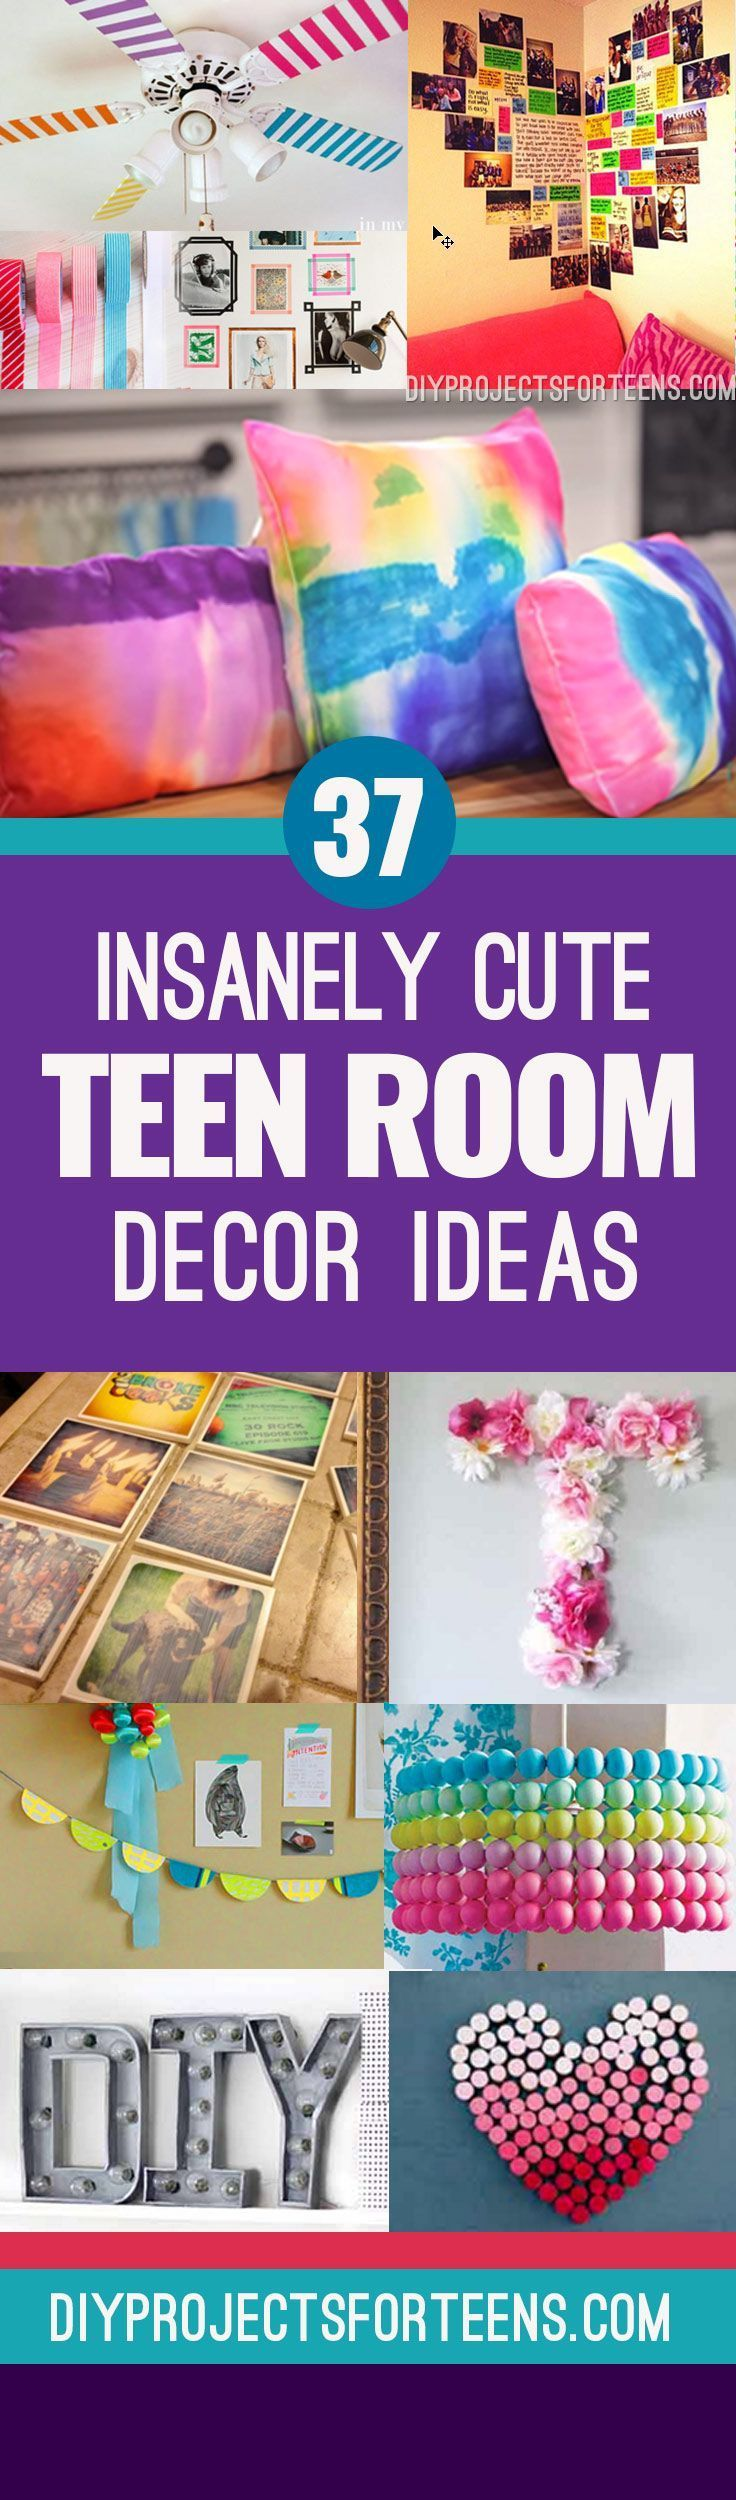 37 insanely cute teen bedroom ideas for diy decor girls for Cool teenage bedroom accessories